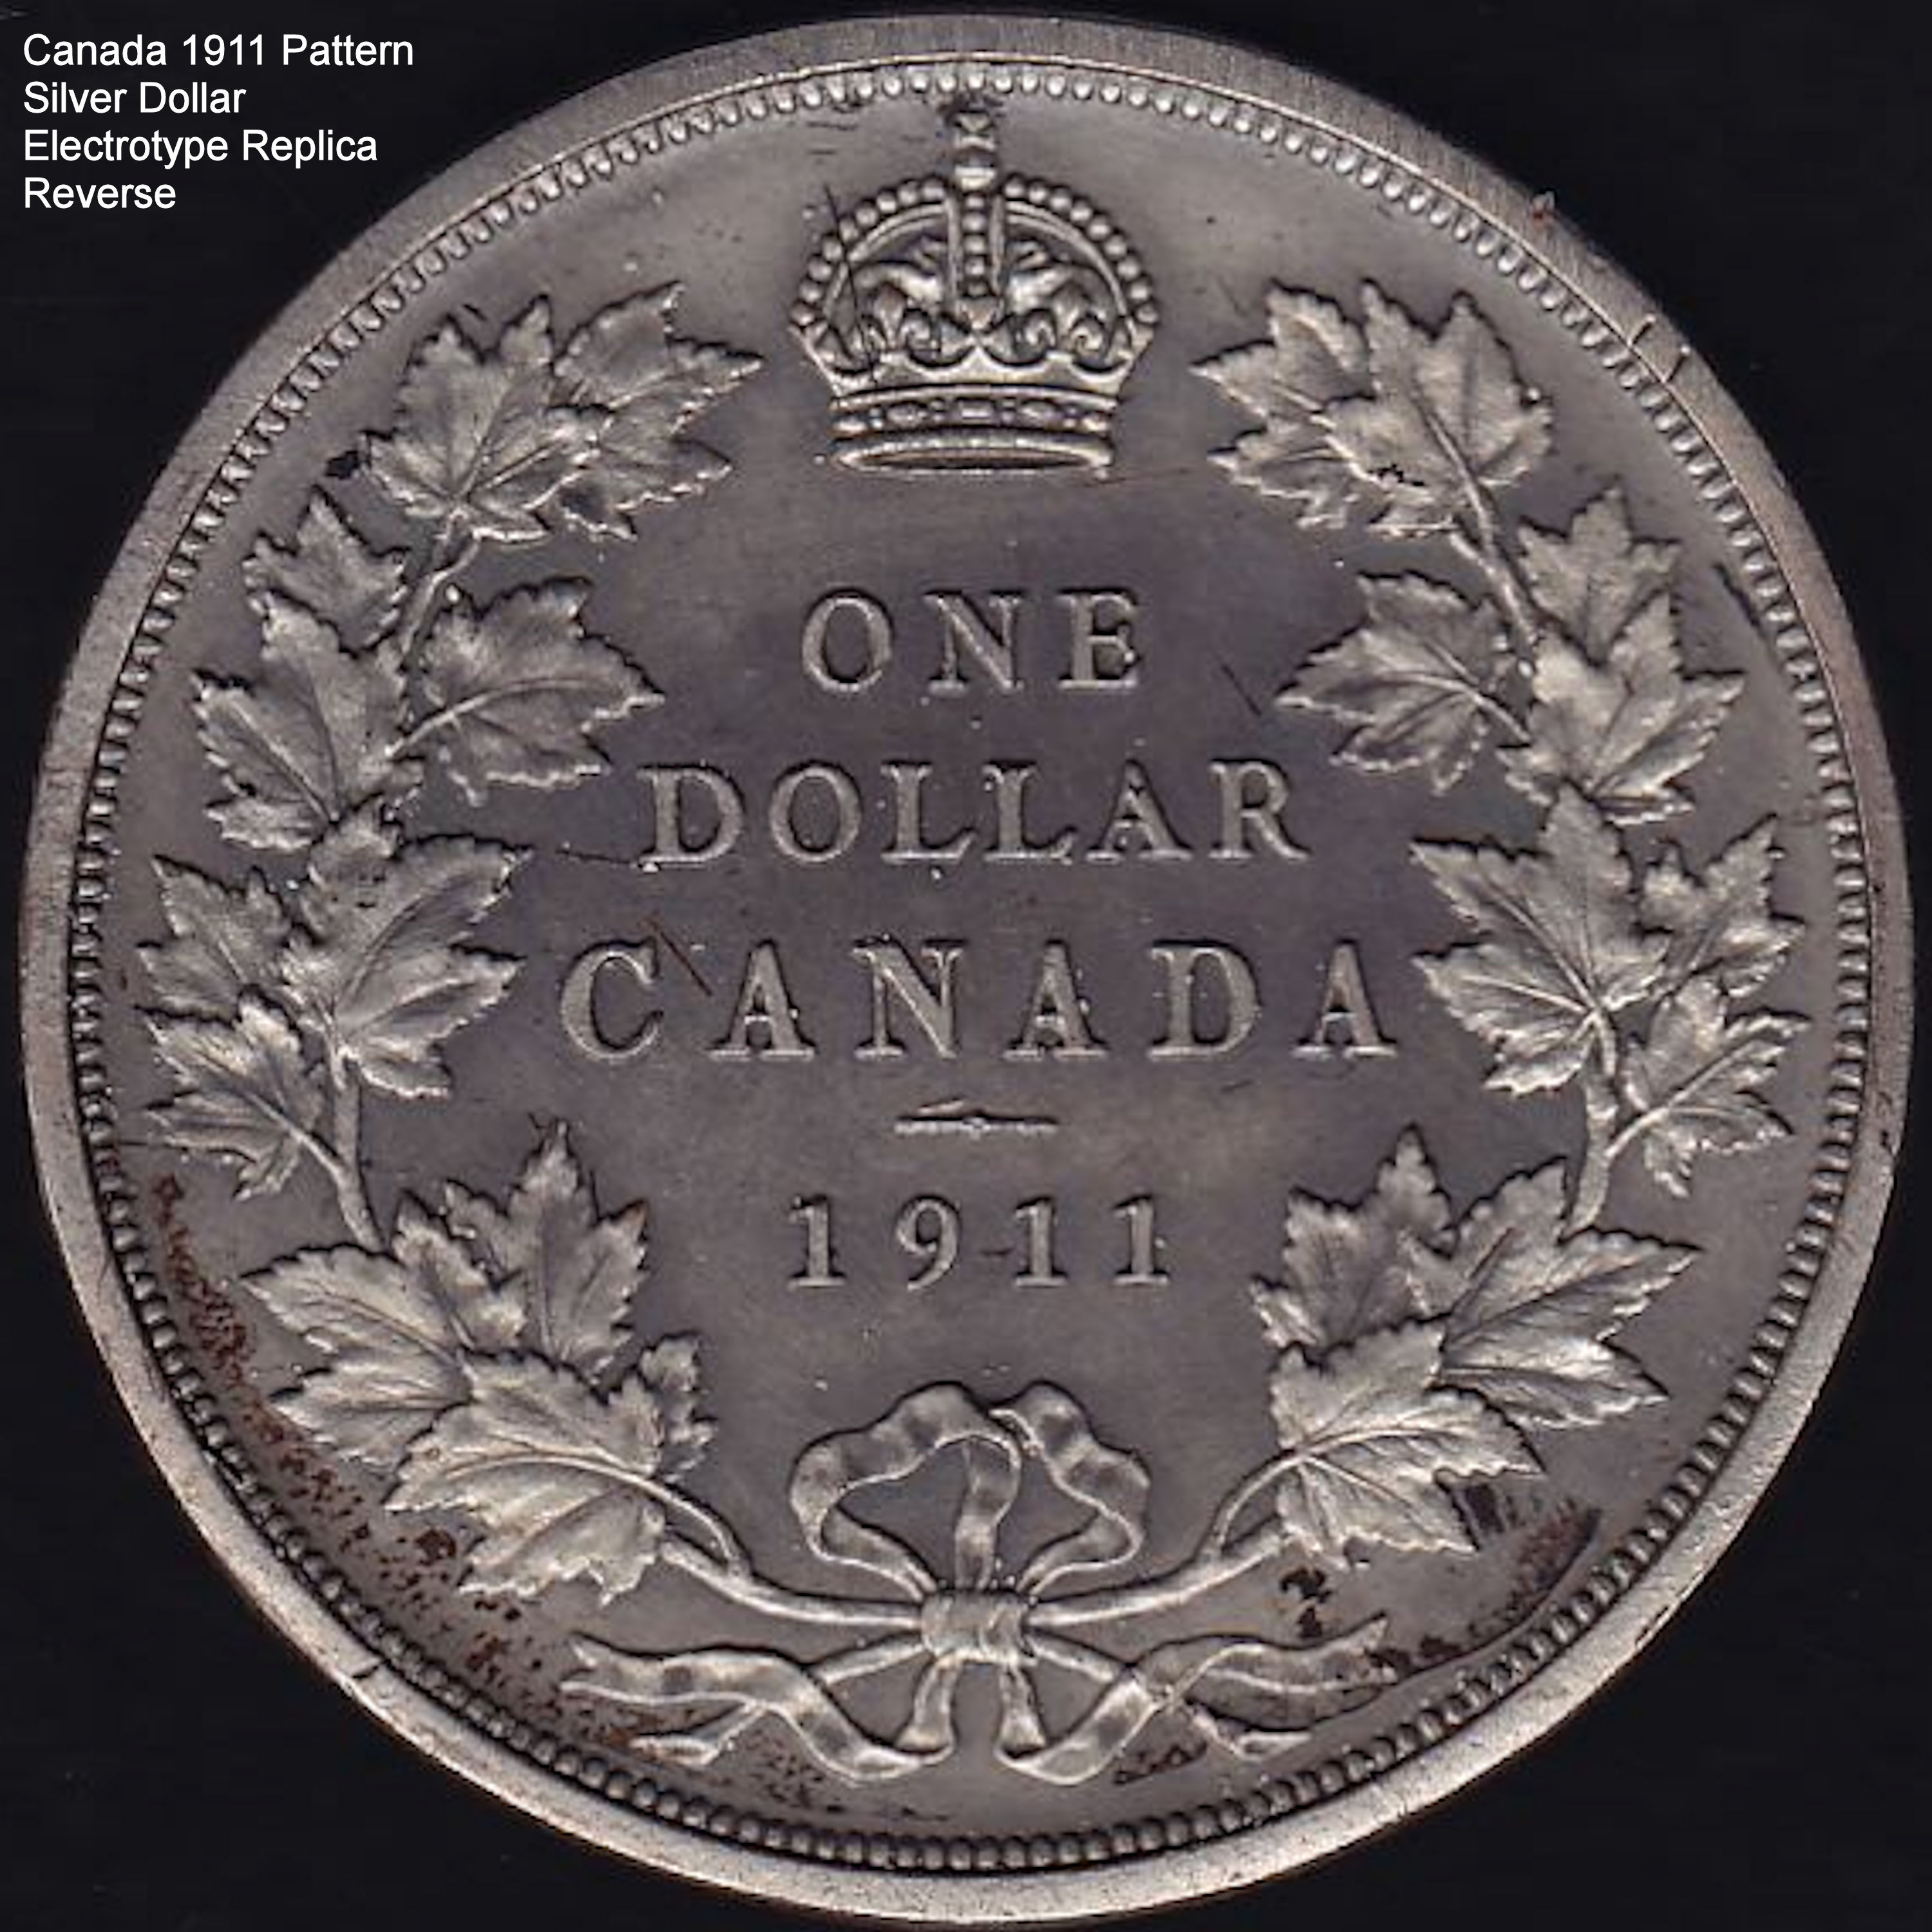 Rare Canadian Coins